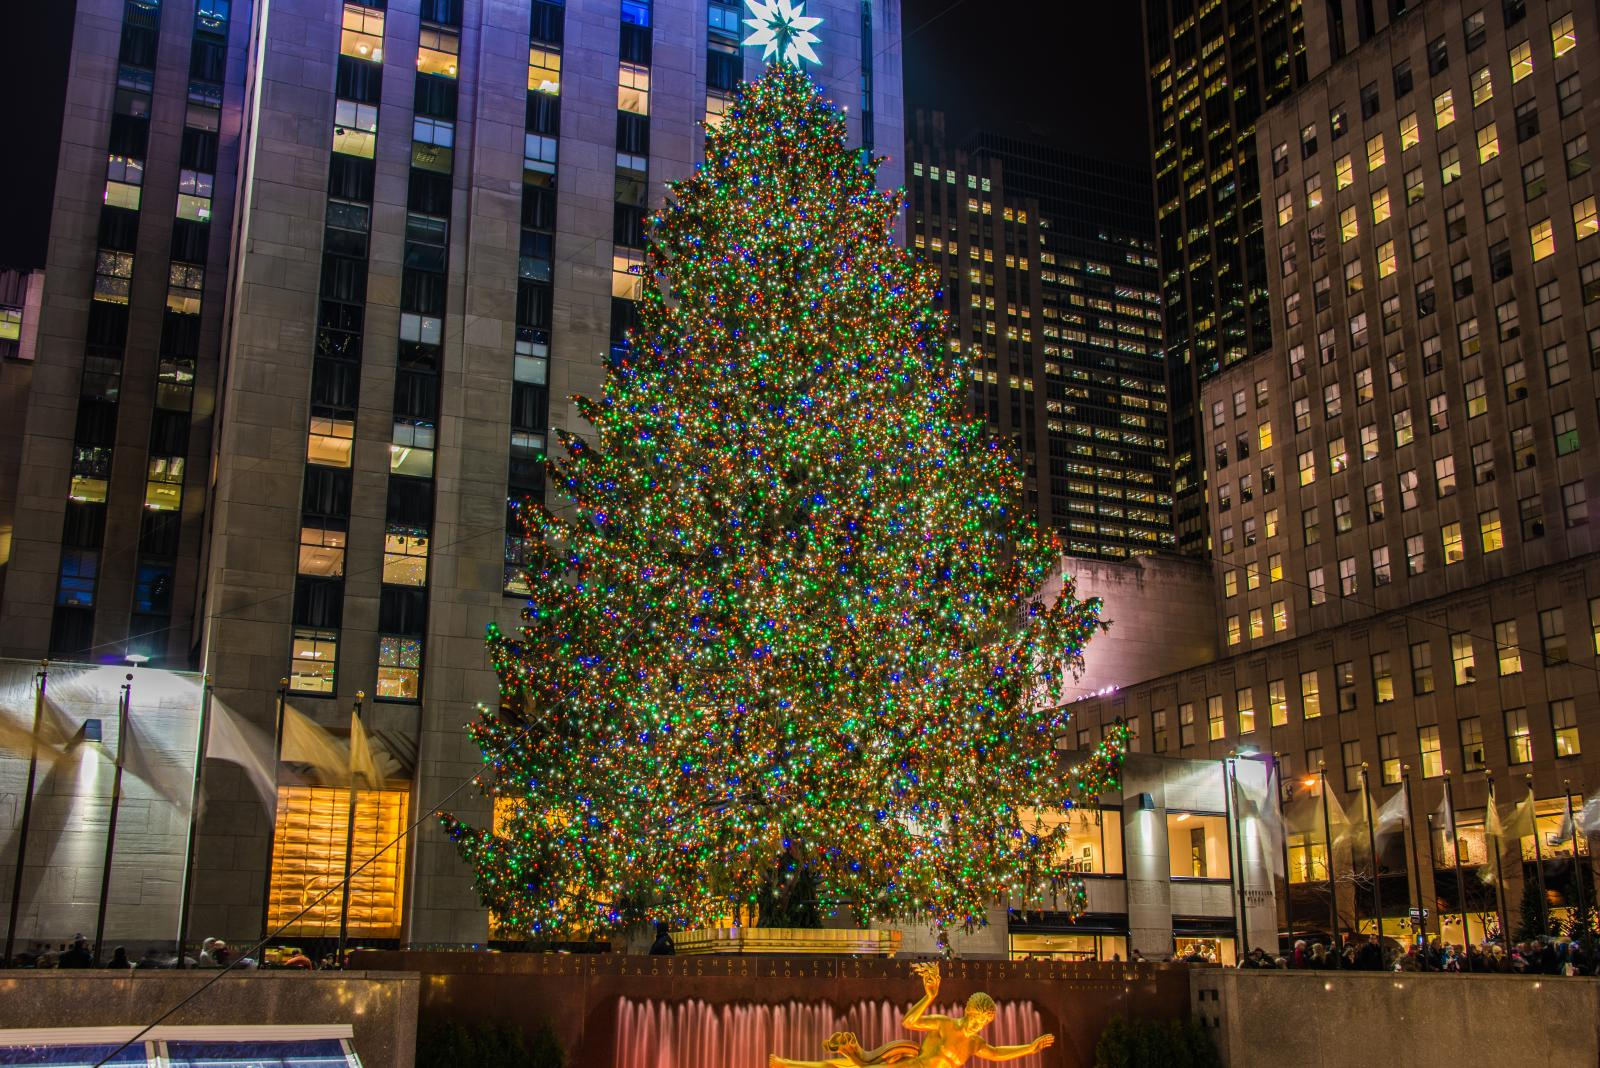 The Rockefeller Christmas Tree 2018 | Top 10 Facts